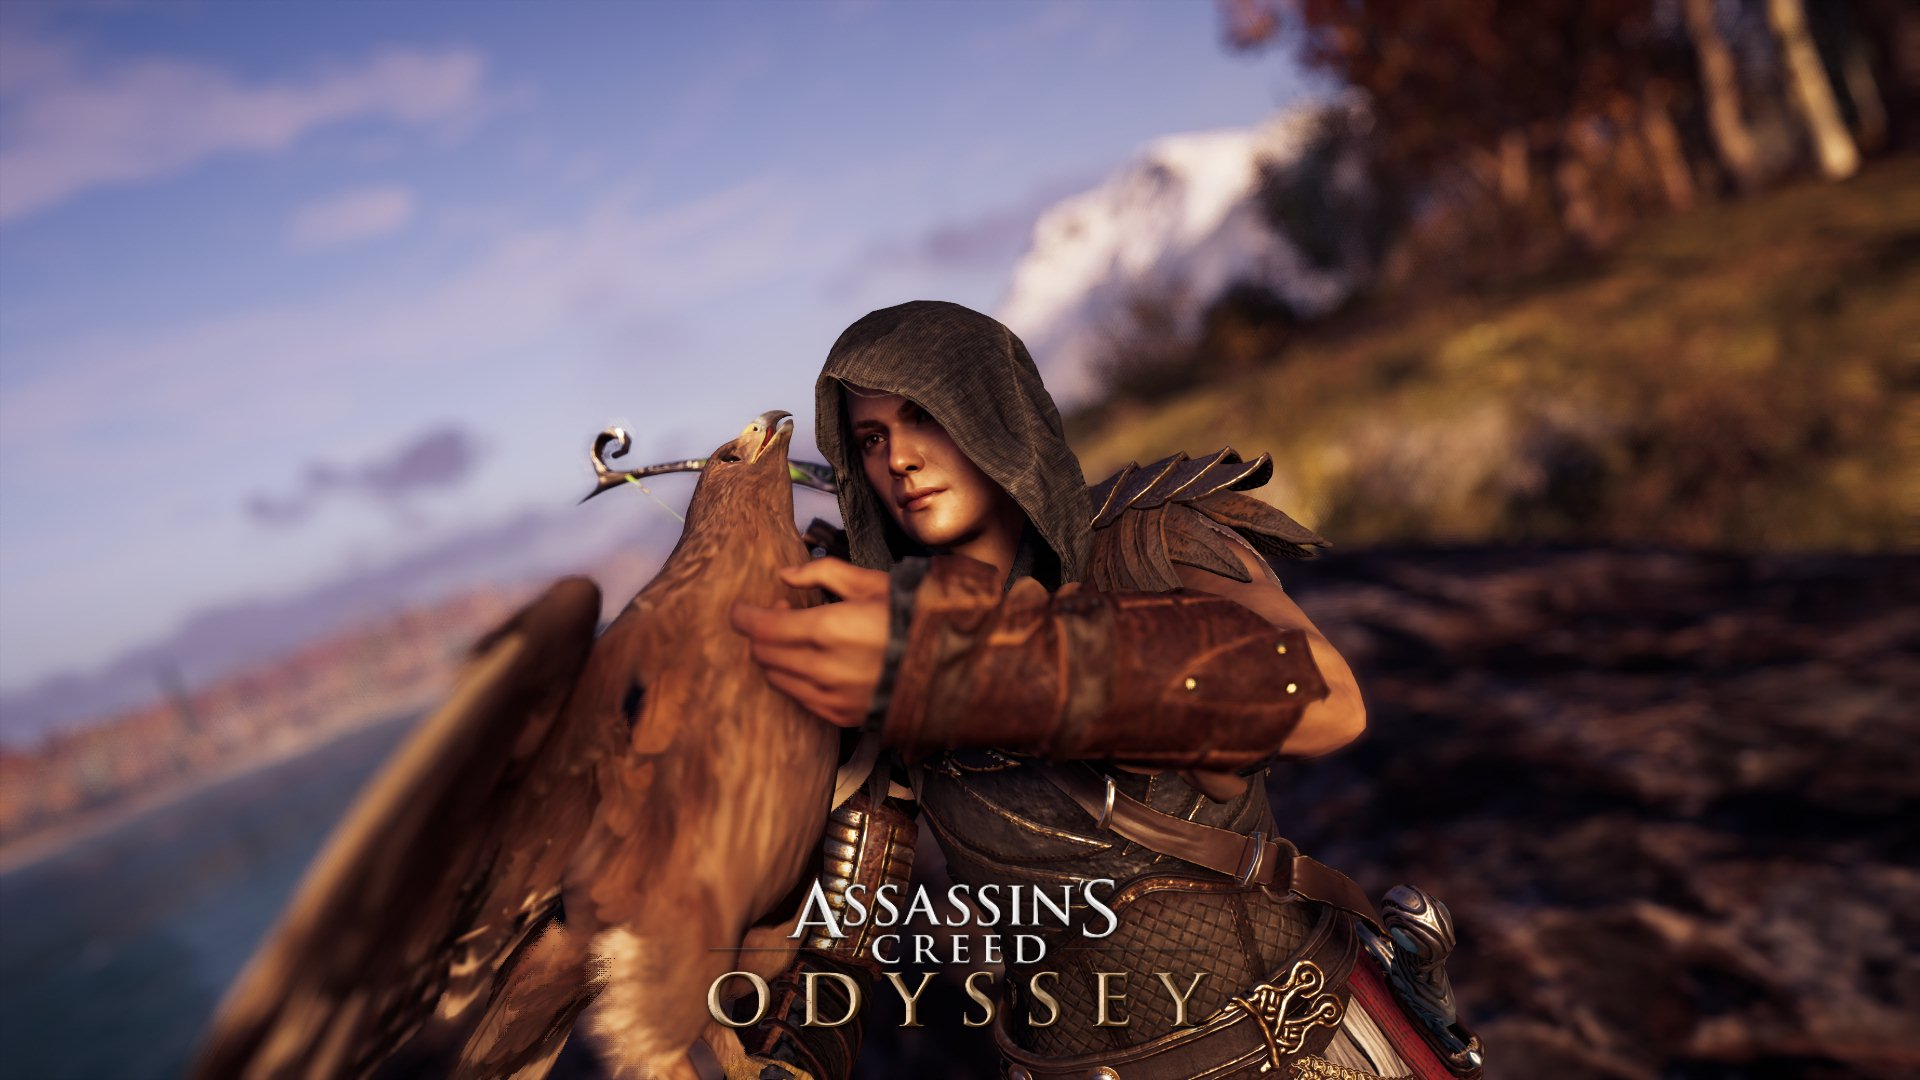 Portrait at Assassins Creed Odyssey Nexus - Mods and